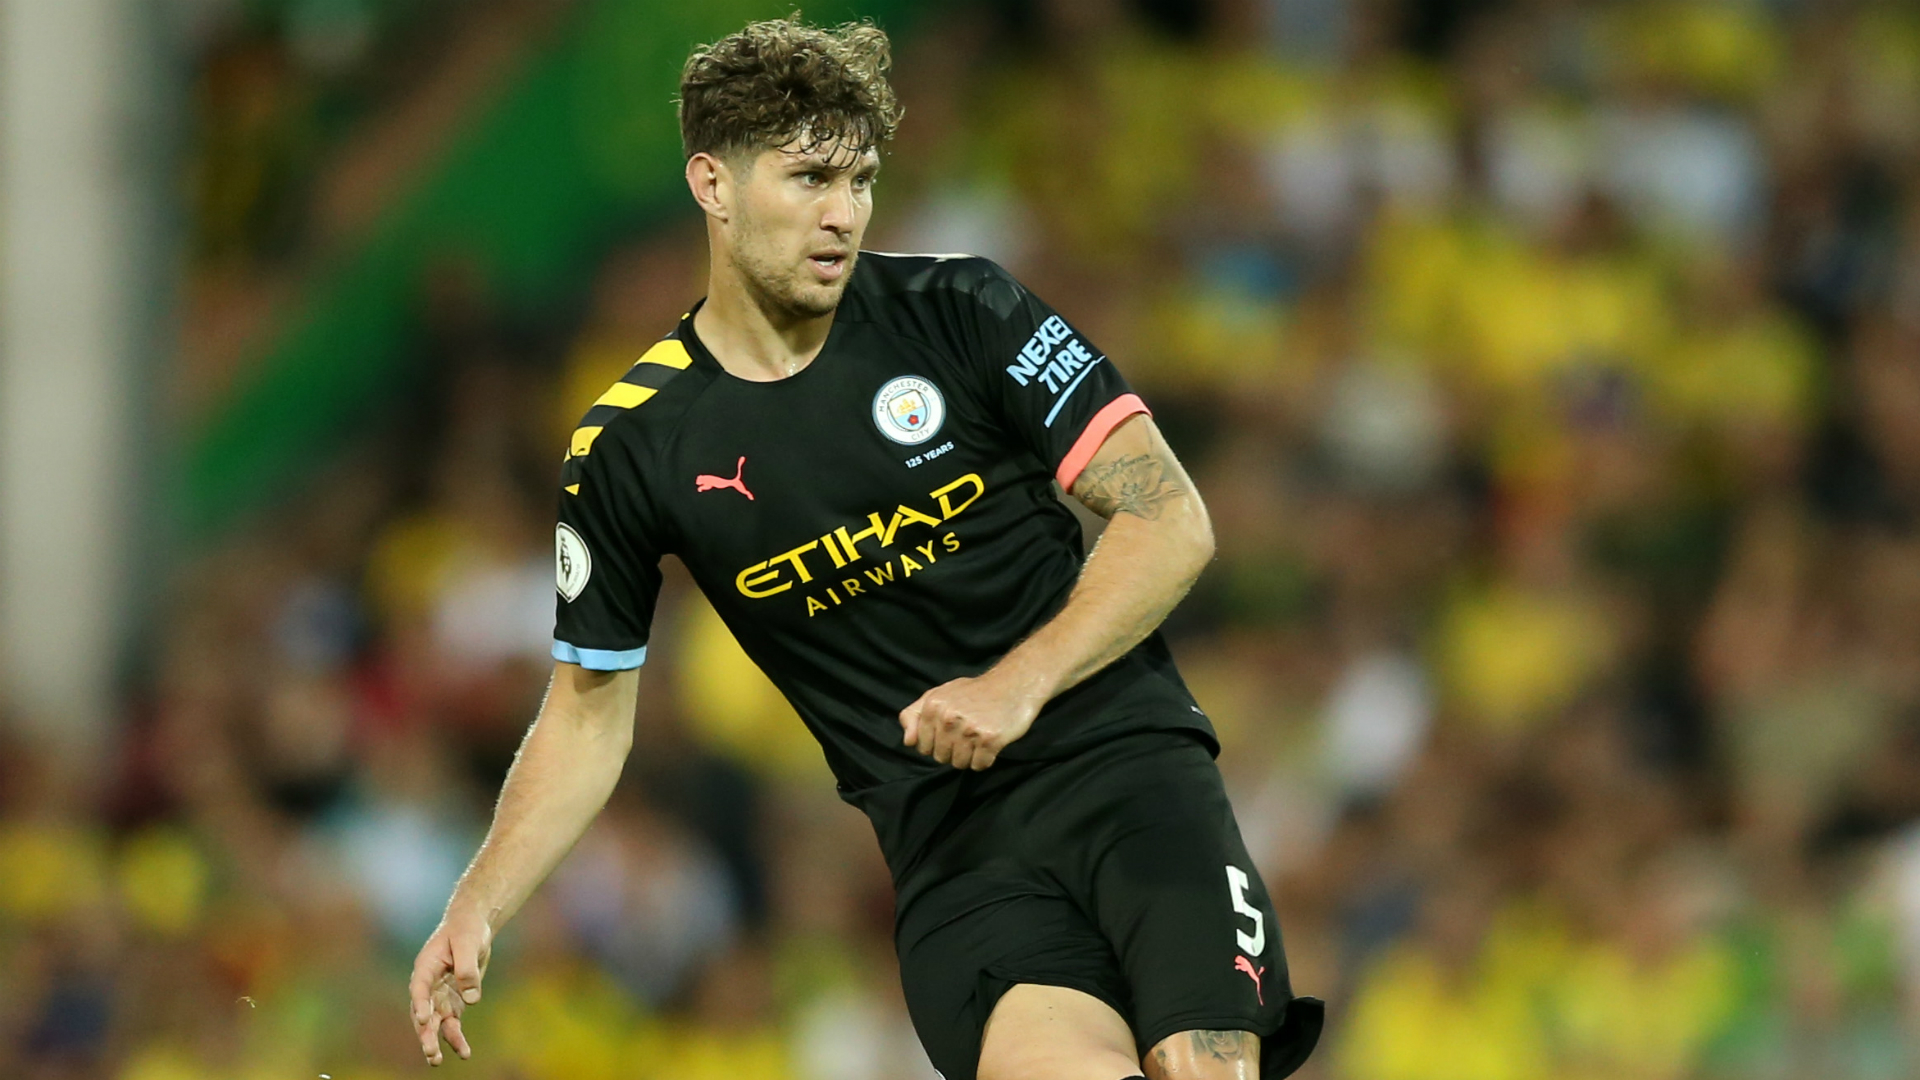 Man City defender Stones out for a month